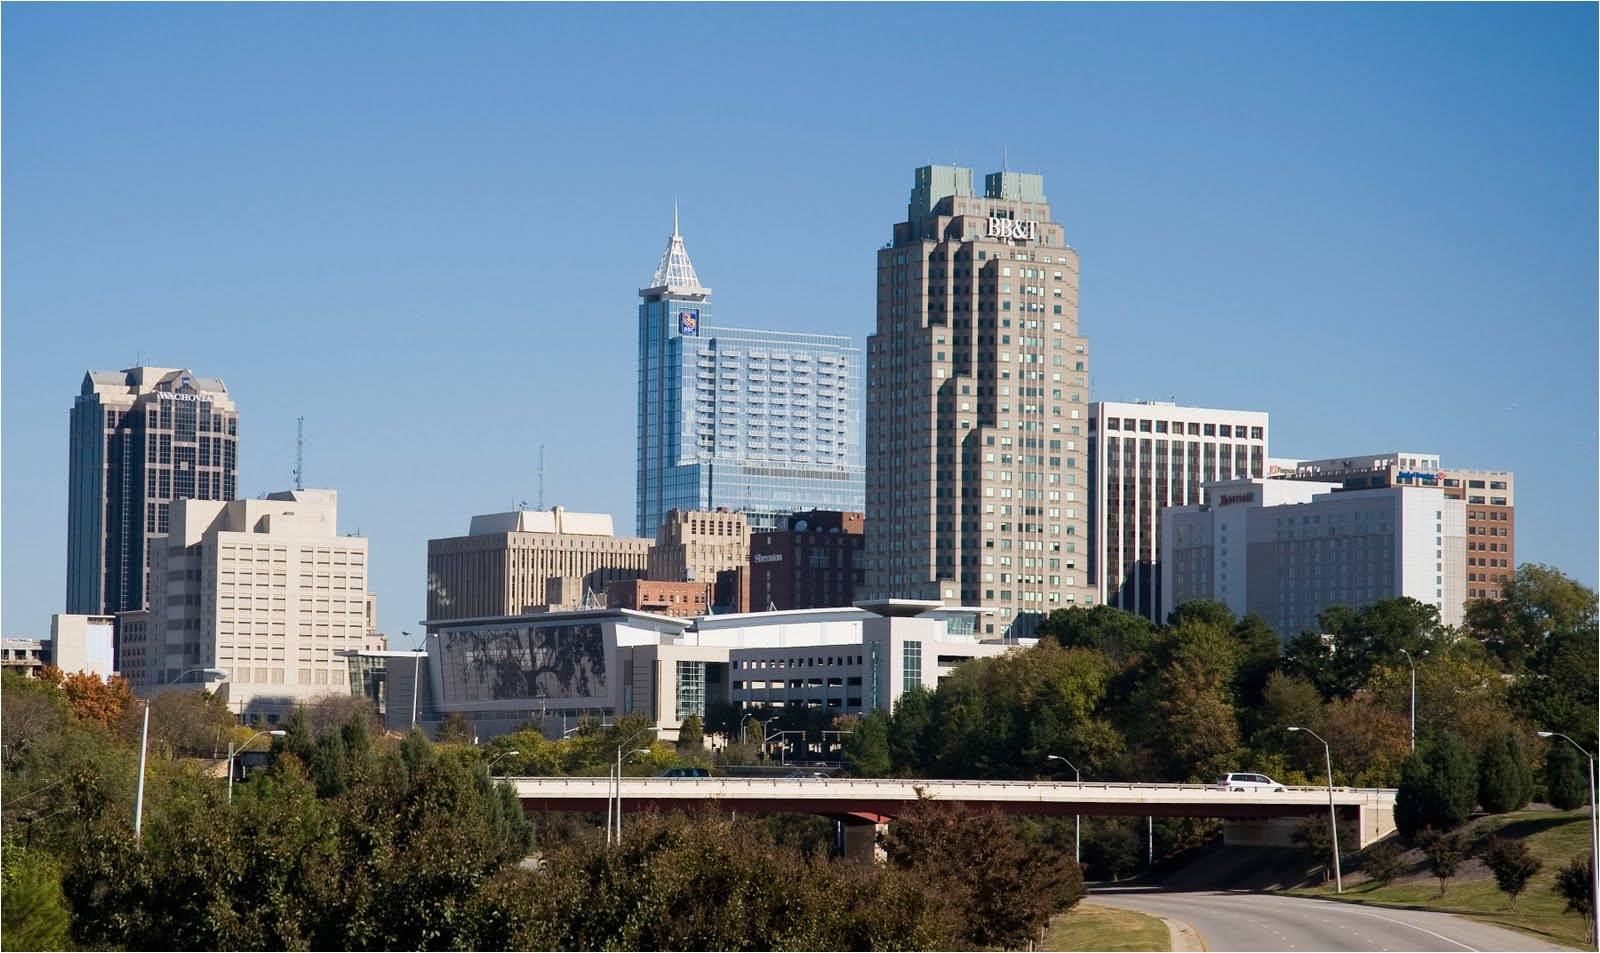 raleigh has been recognized as a best performing city in the united states raleigh s spot was based on jobs wages salaries and technologic output